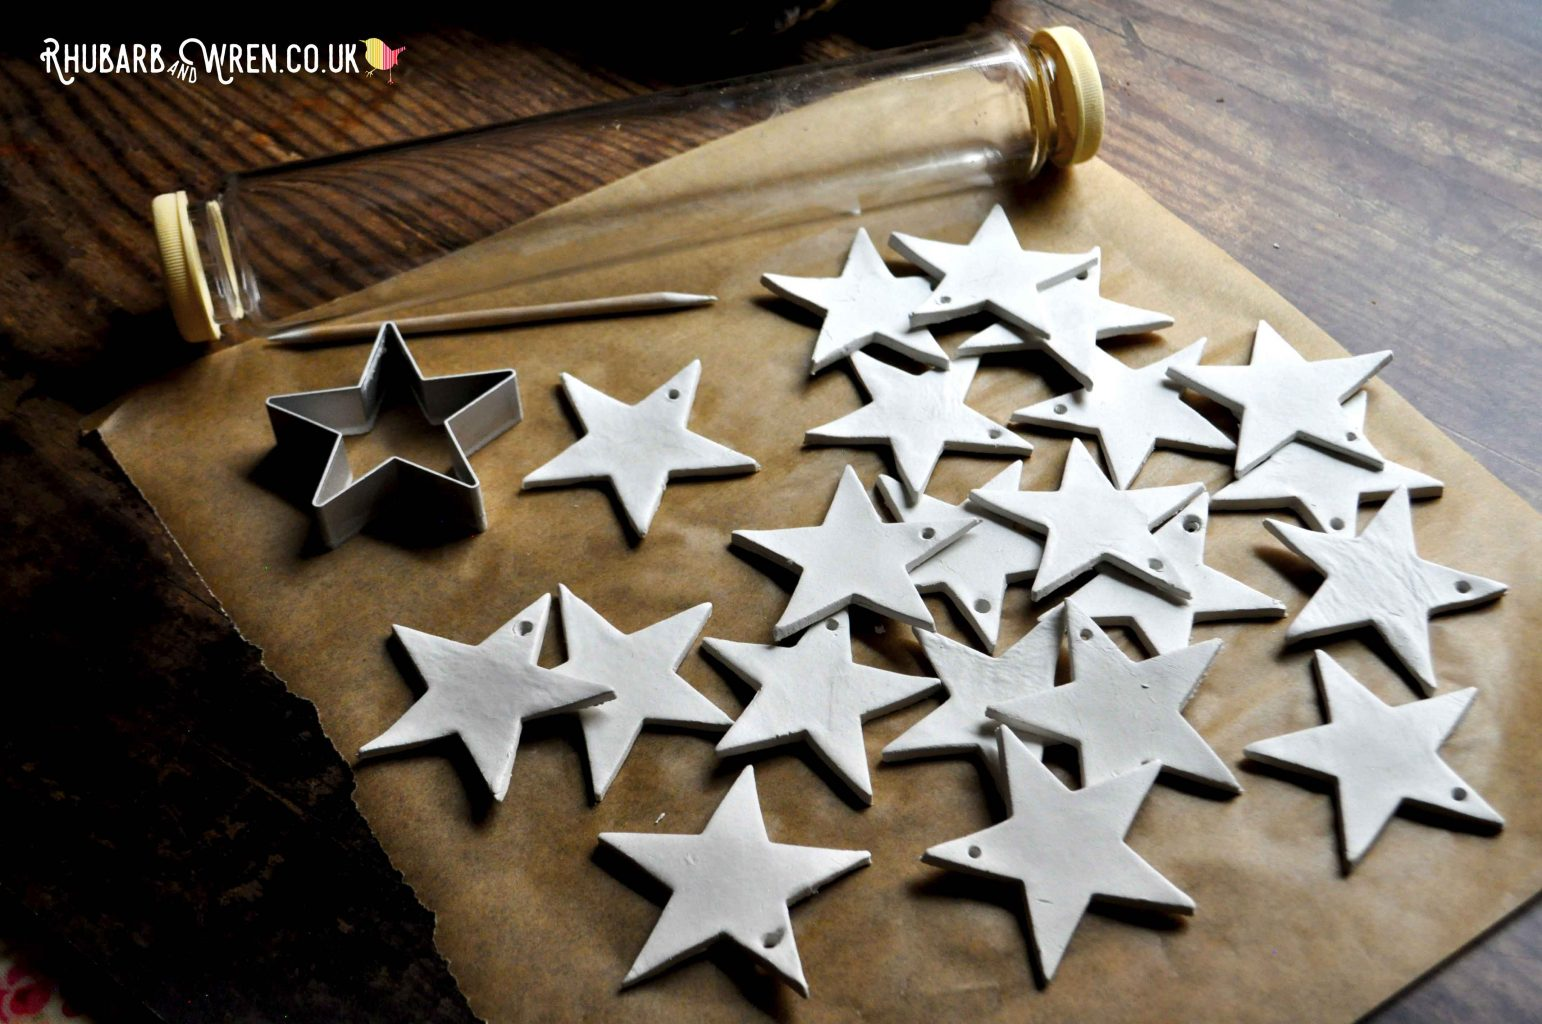 Using a glass rolling pin and star biscuit cutter to make clay star ornaments for Christmas decorations.